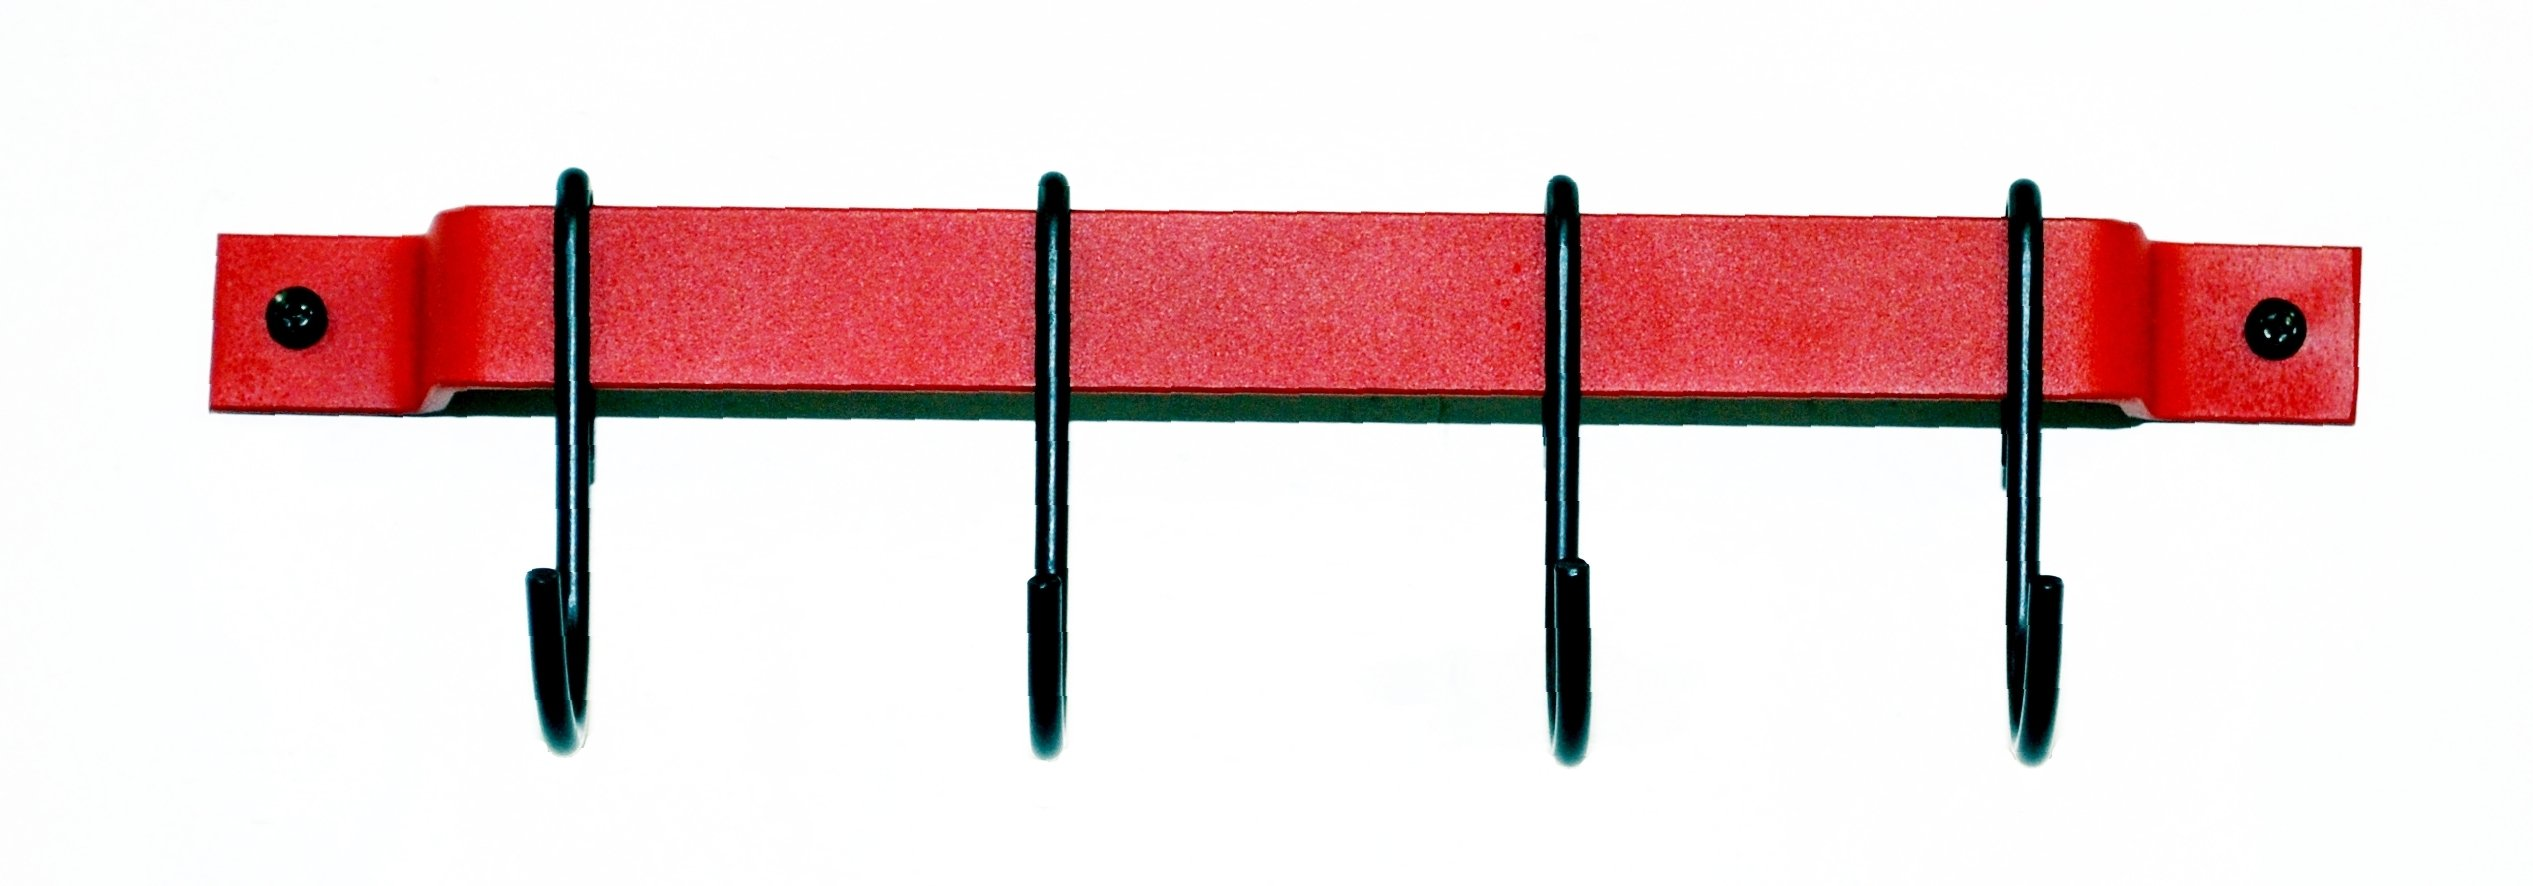 12'' Red Utensil Rack by Rogar by Rogar